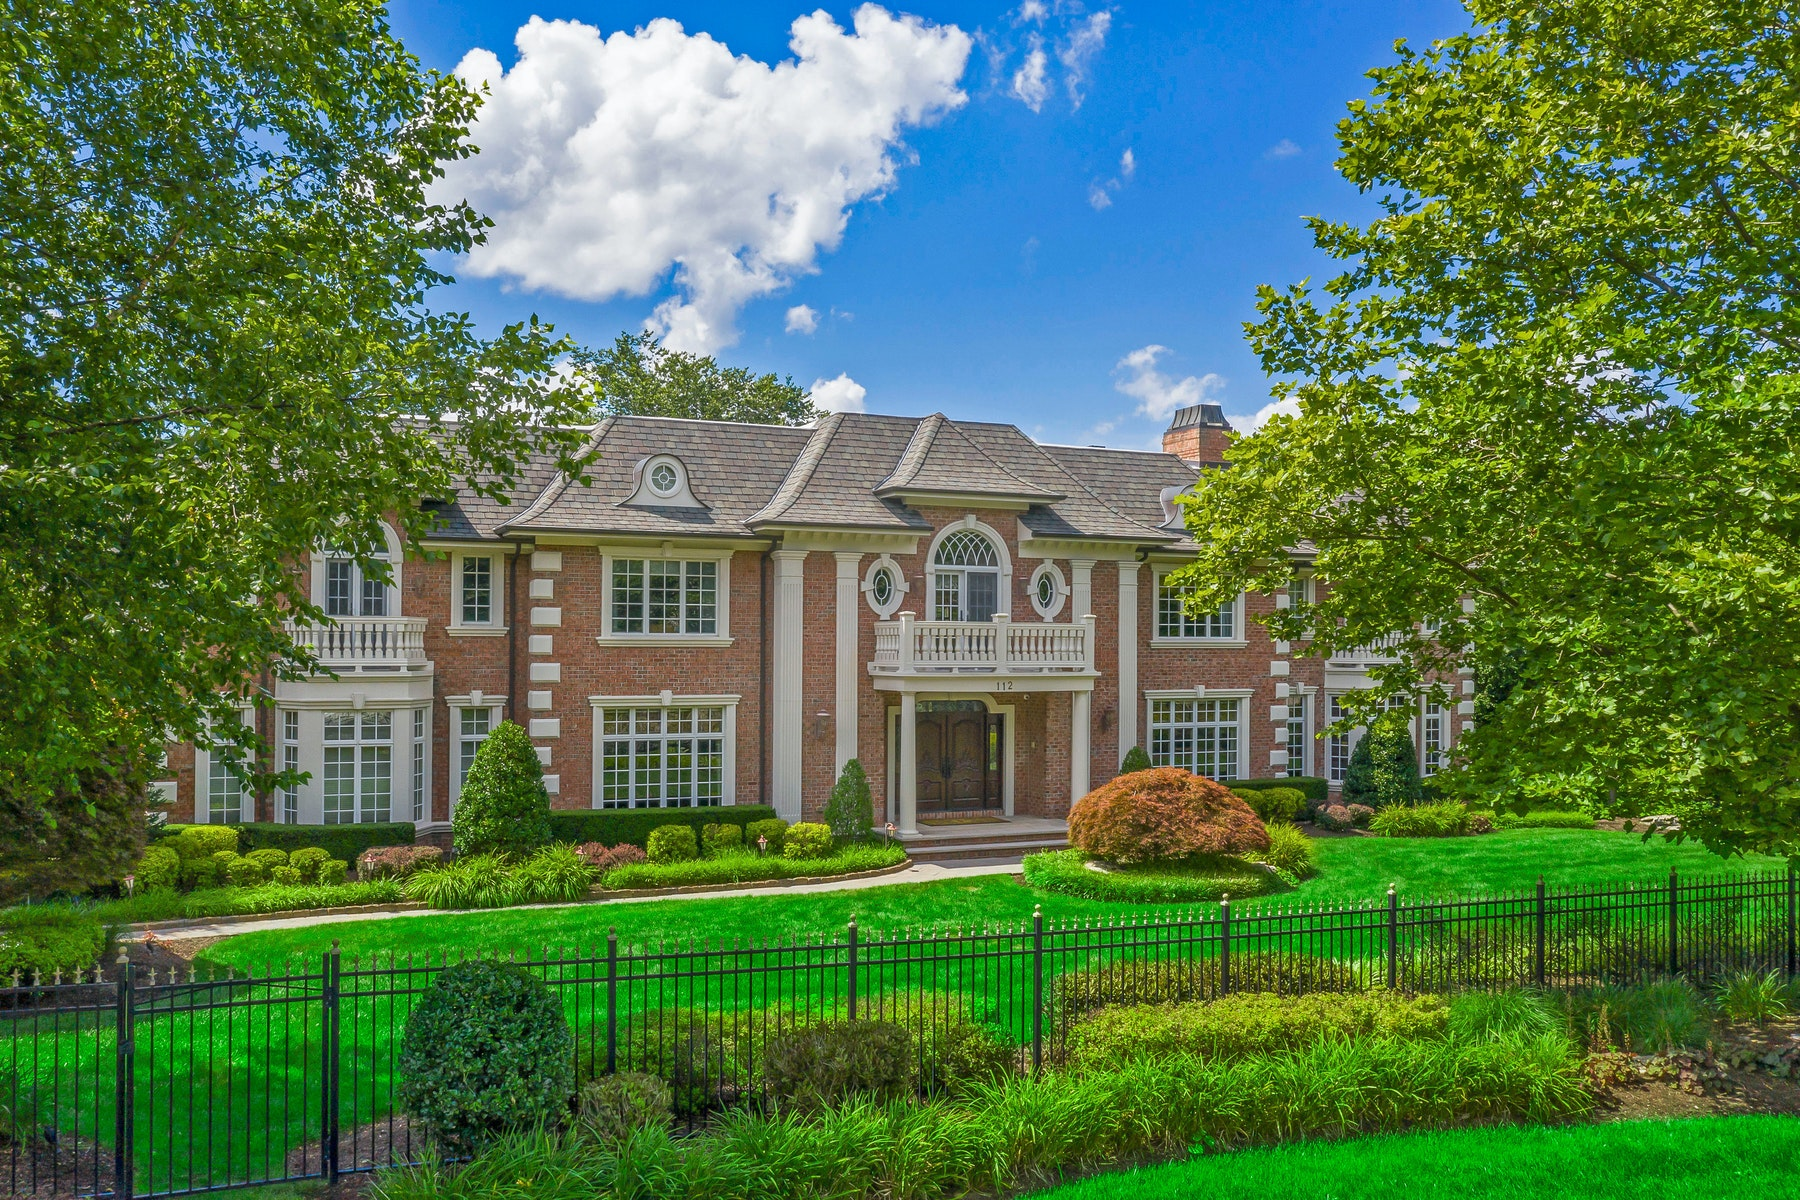 Single Family Homes のために 売買 アット Tree Lined Cul-de-sac 112 Garden Ct, Franklin Lakes, ニュージャージー 07417 アメリカ